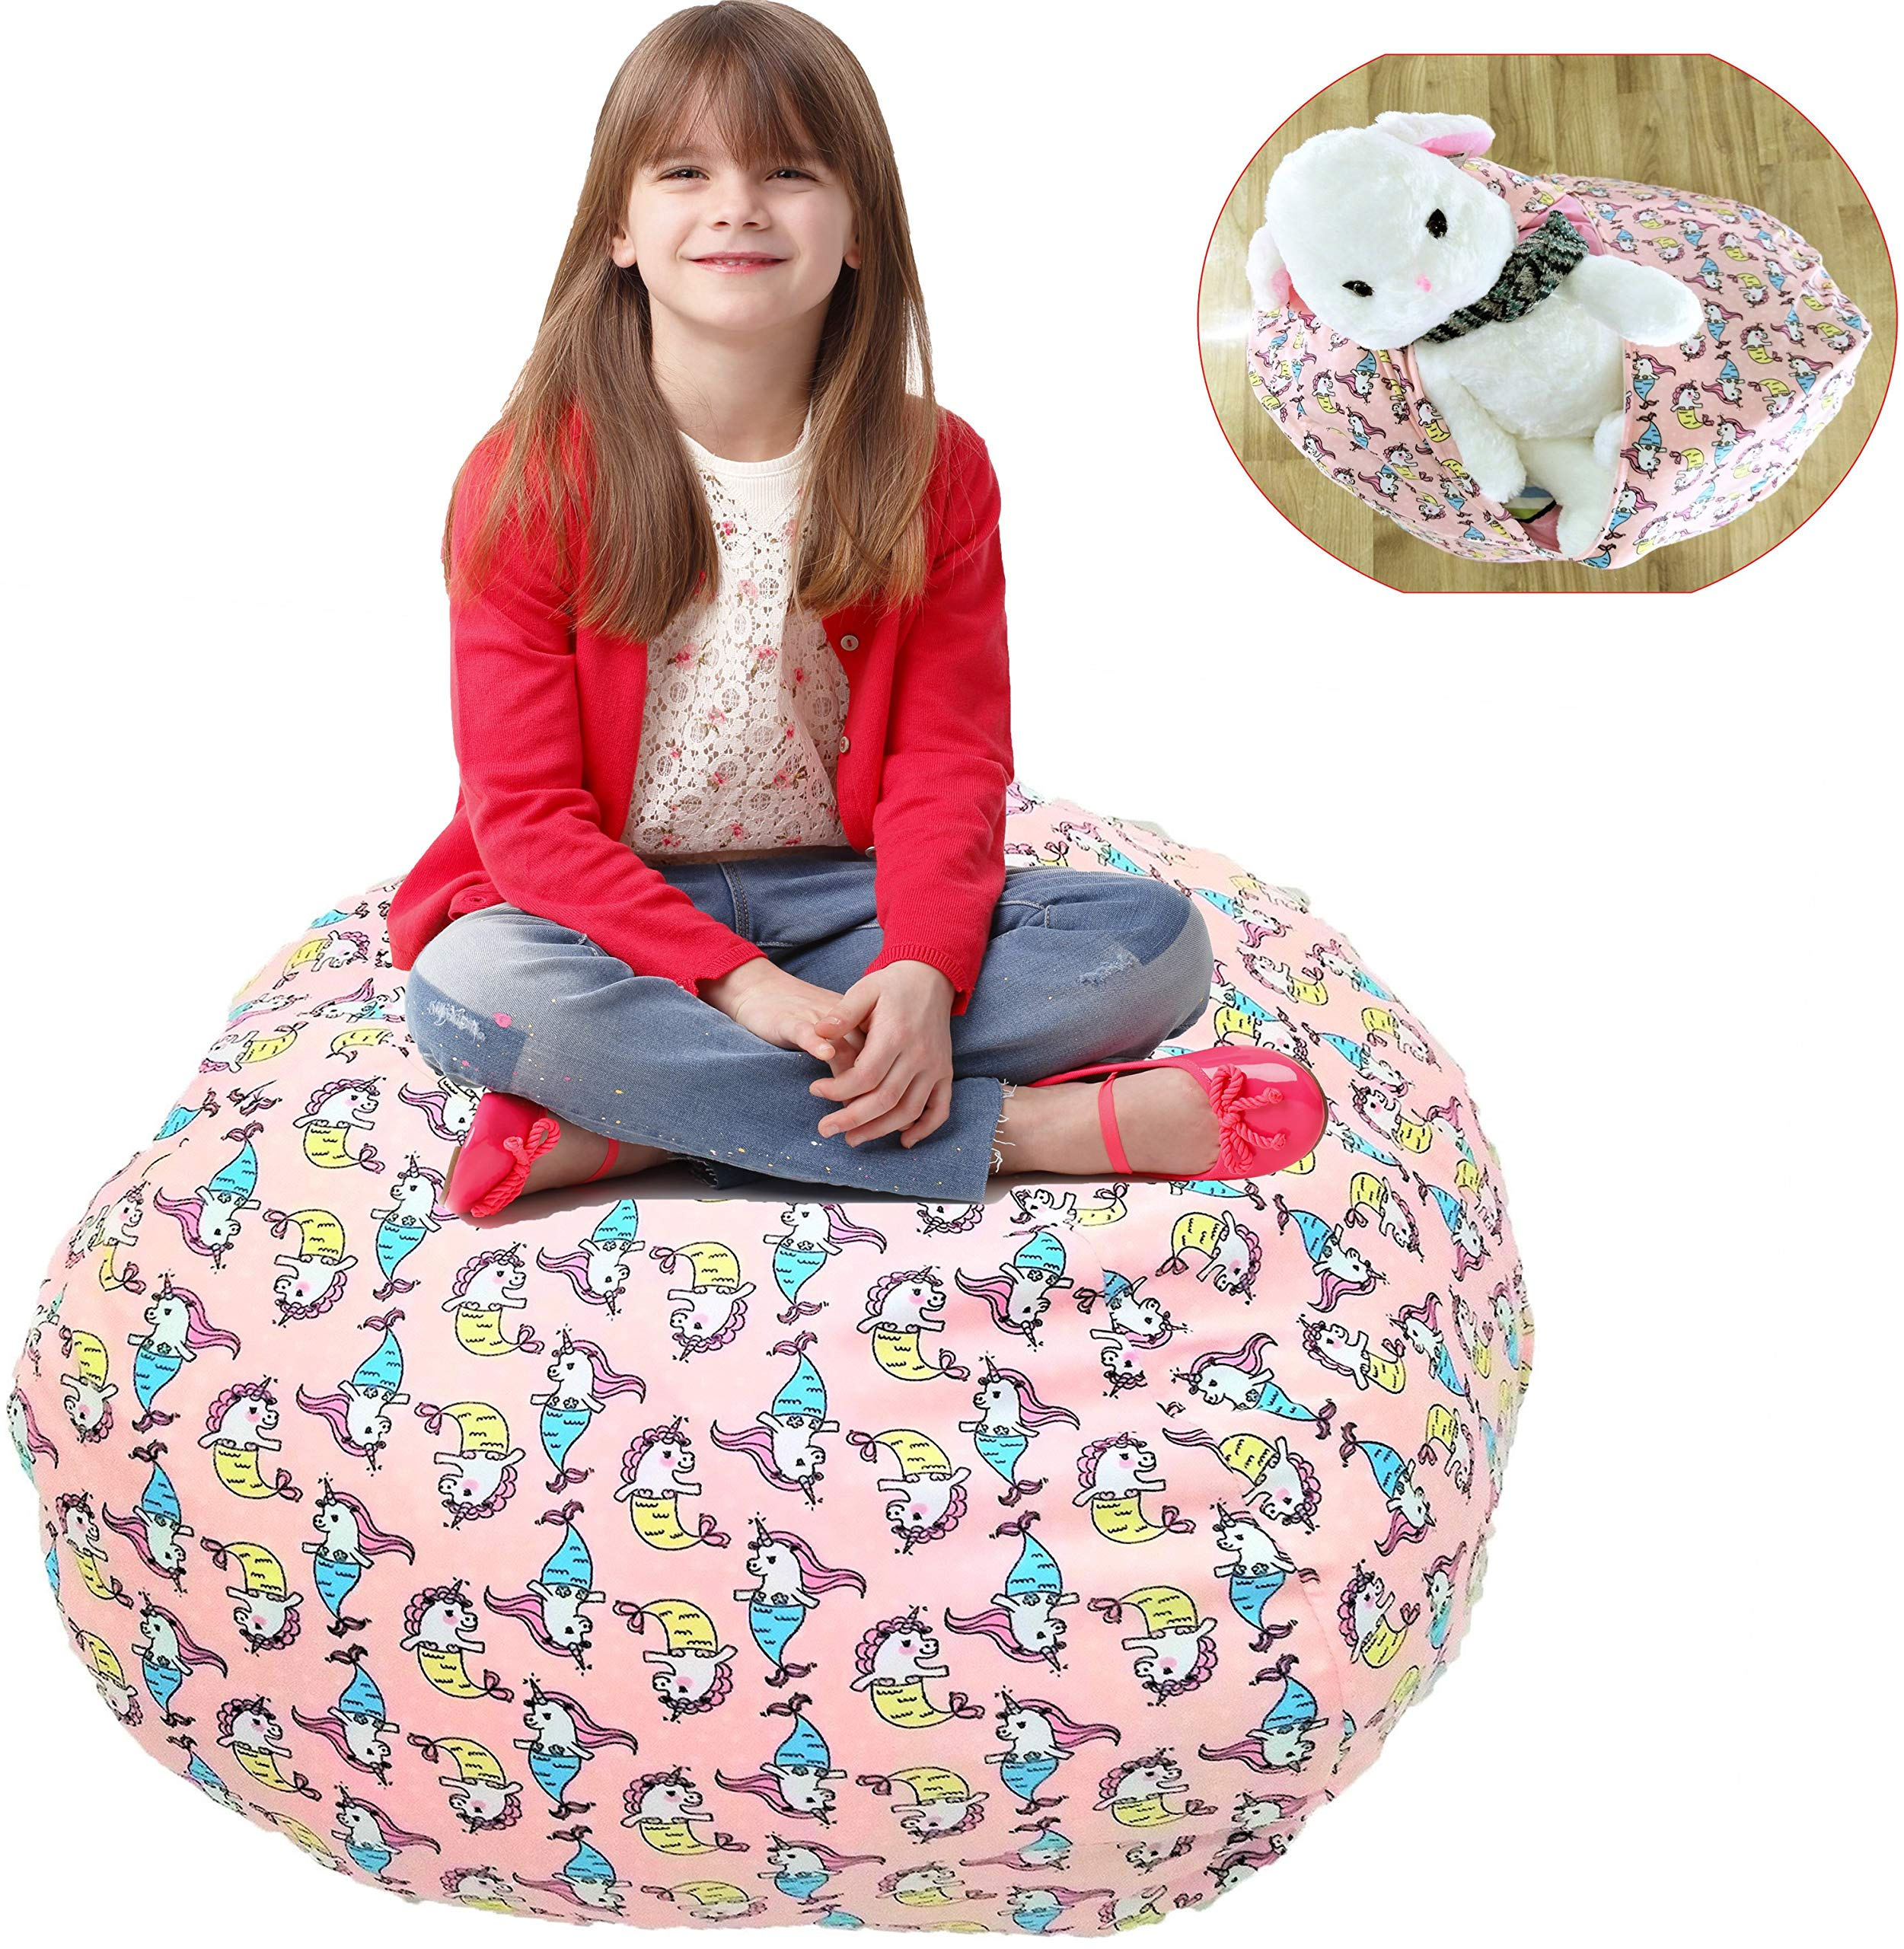 Shinny shony Stuffed Animal Storage Bean Bag - Cover Only - Large Triangle Beanbag Chair for Kids - 90 Plush Toys Holder - Quality YKK Zipper (Pink-1) by Shinny shony